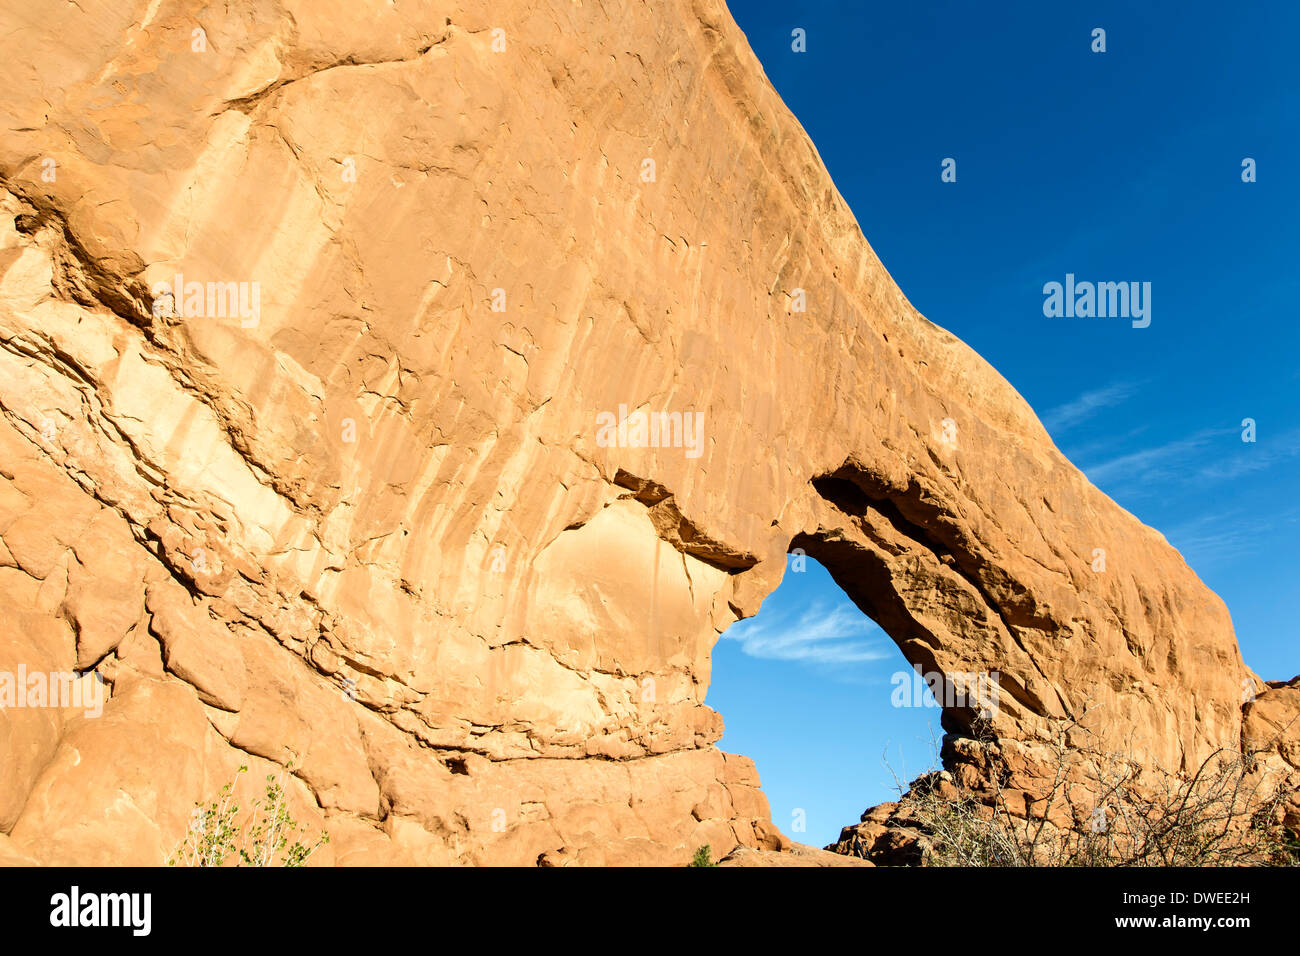 Nord-Fenster, Arches-Nationalpark, Moab, Utah USA Stockbild